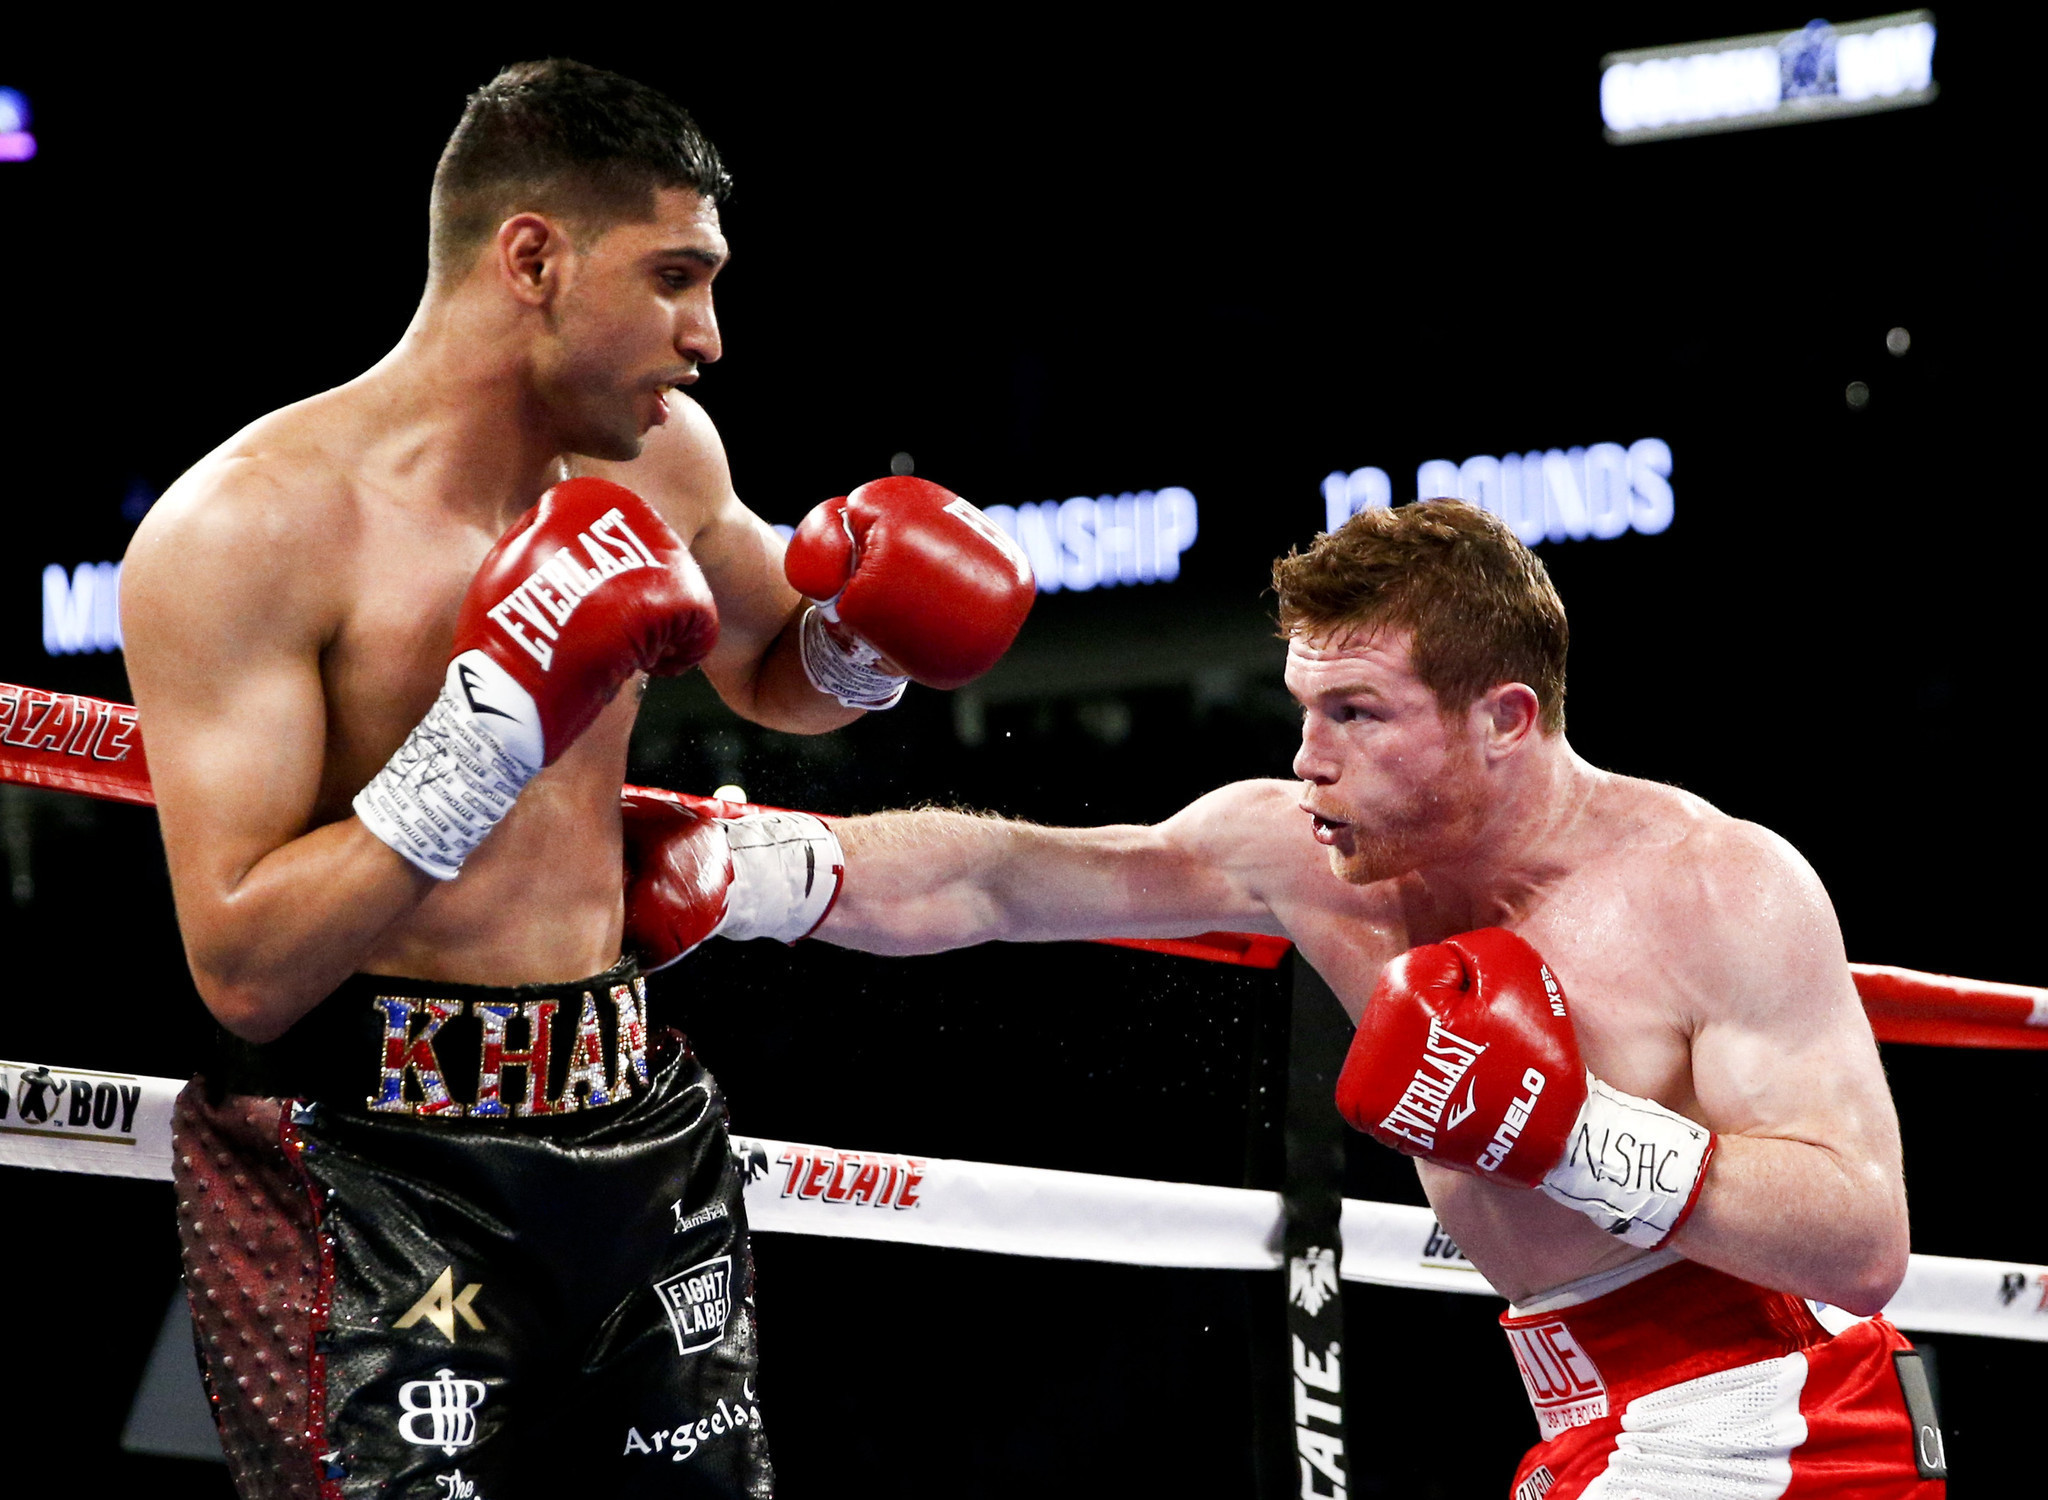 La-sp-sn-canelo-alvarez-vacates-wbc-belt-20160518